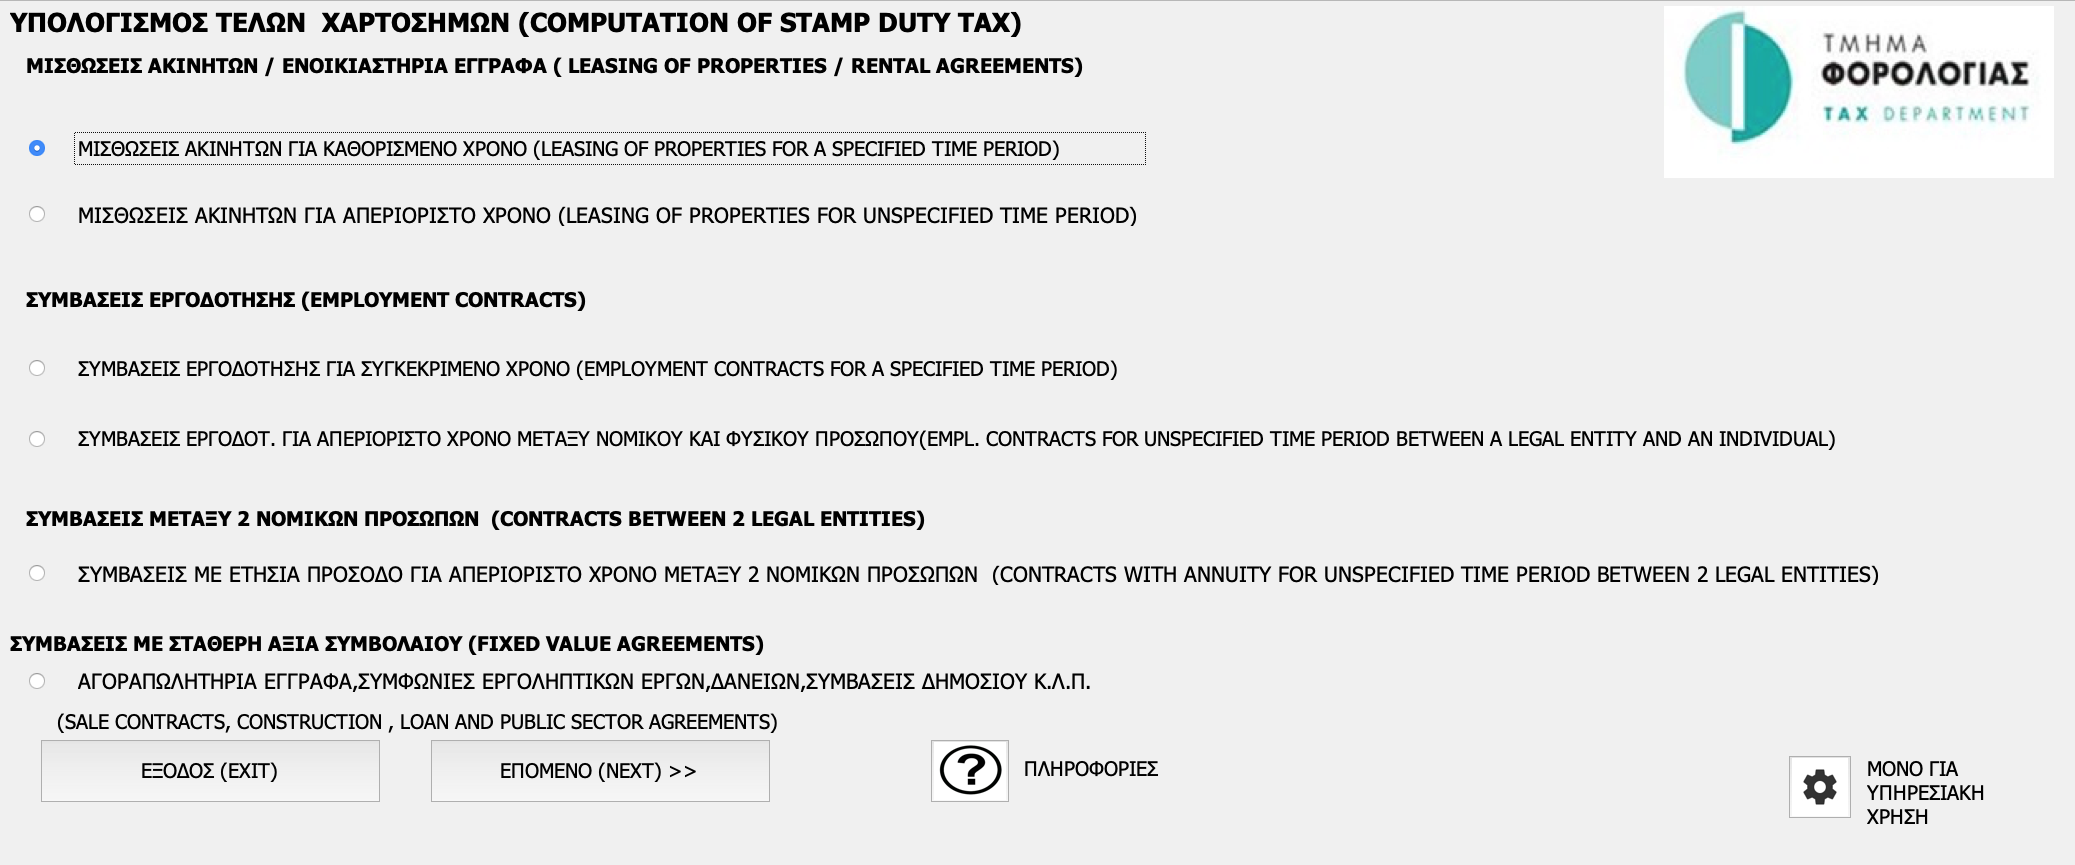 Procedures for Payment of Stamp Duty